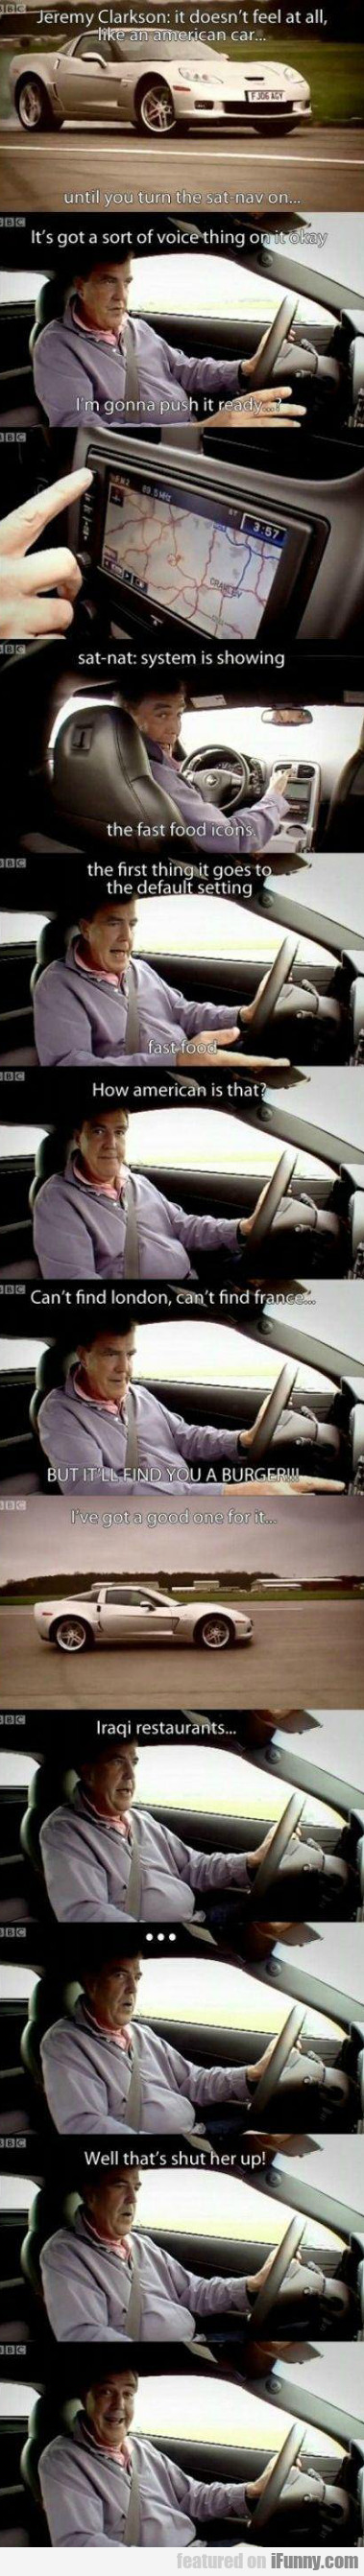 Jeremy Clarkson: It Doesn't Fell At All Like An...